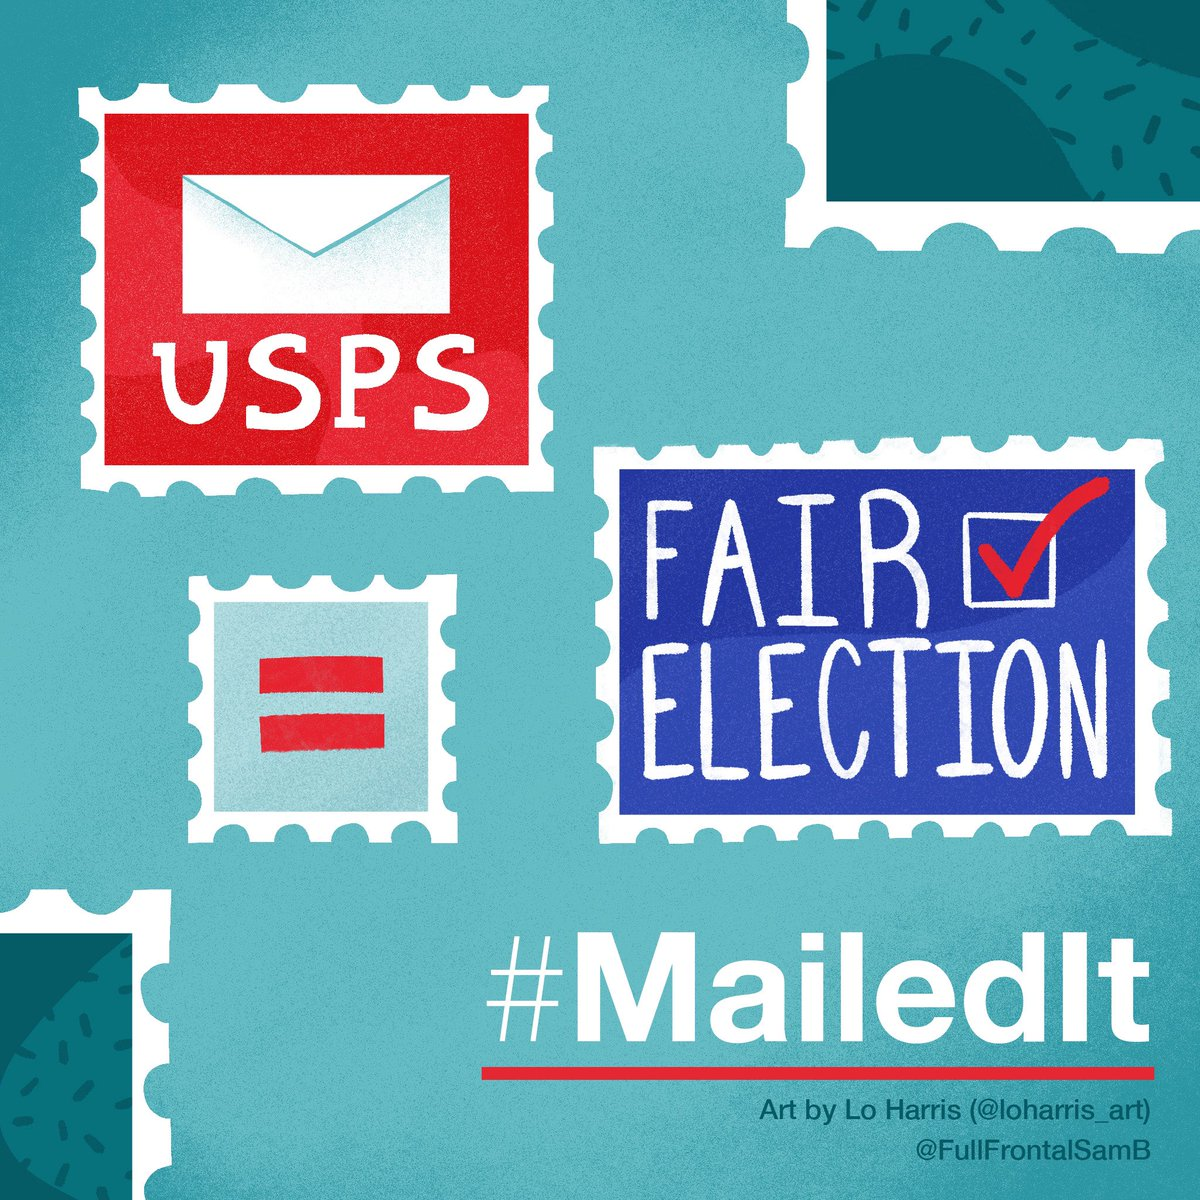 Hey @stevenmnuchin1, do the right thing and help us save the US Postal Service. We need mail-in ballots! #MailedIt @FullFrontalSamB